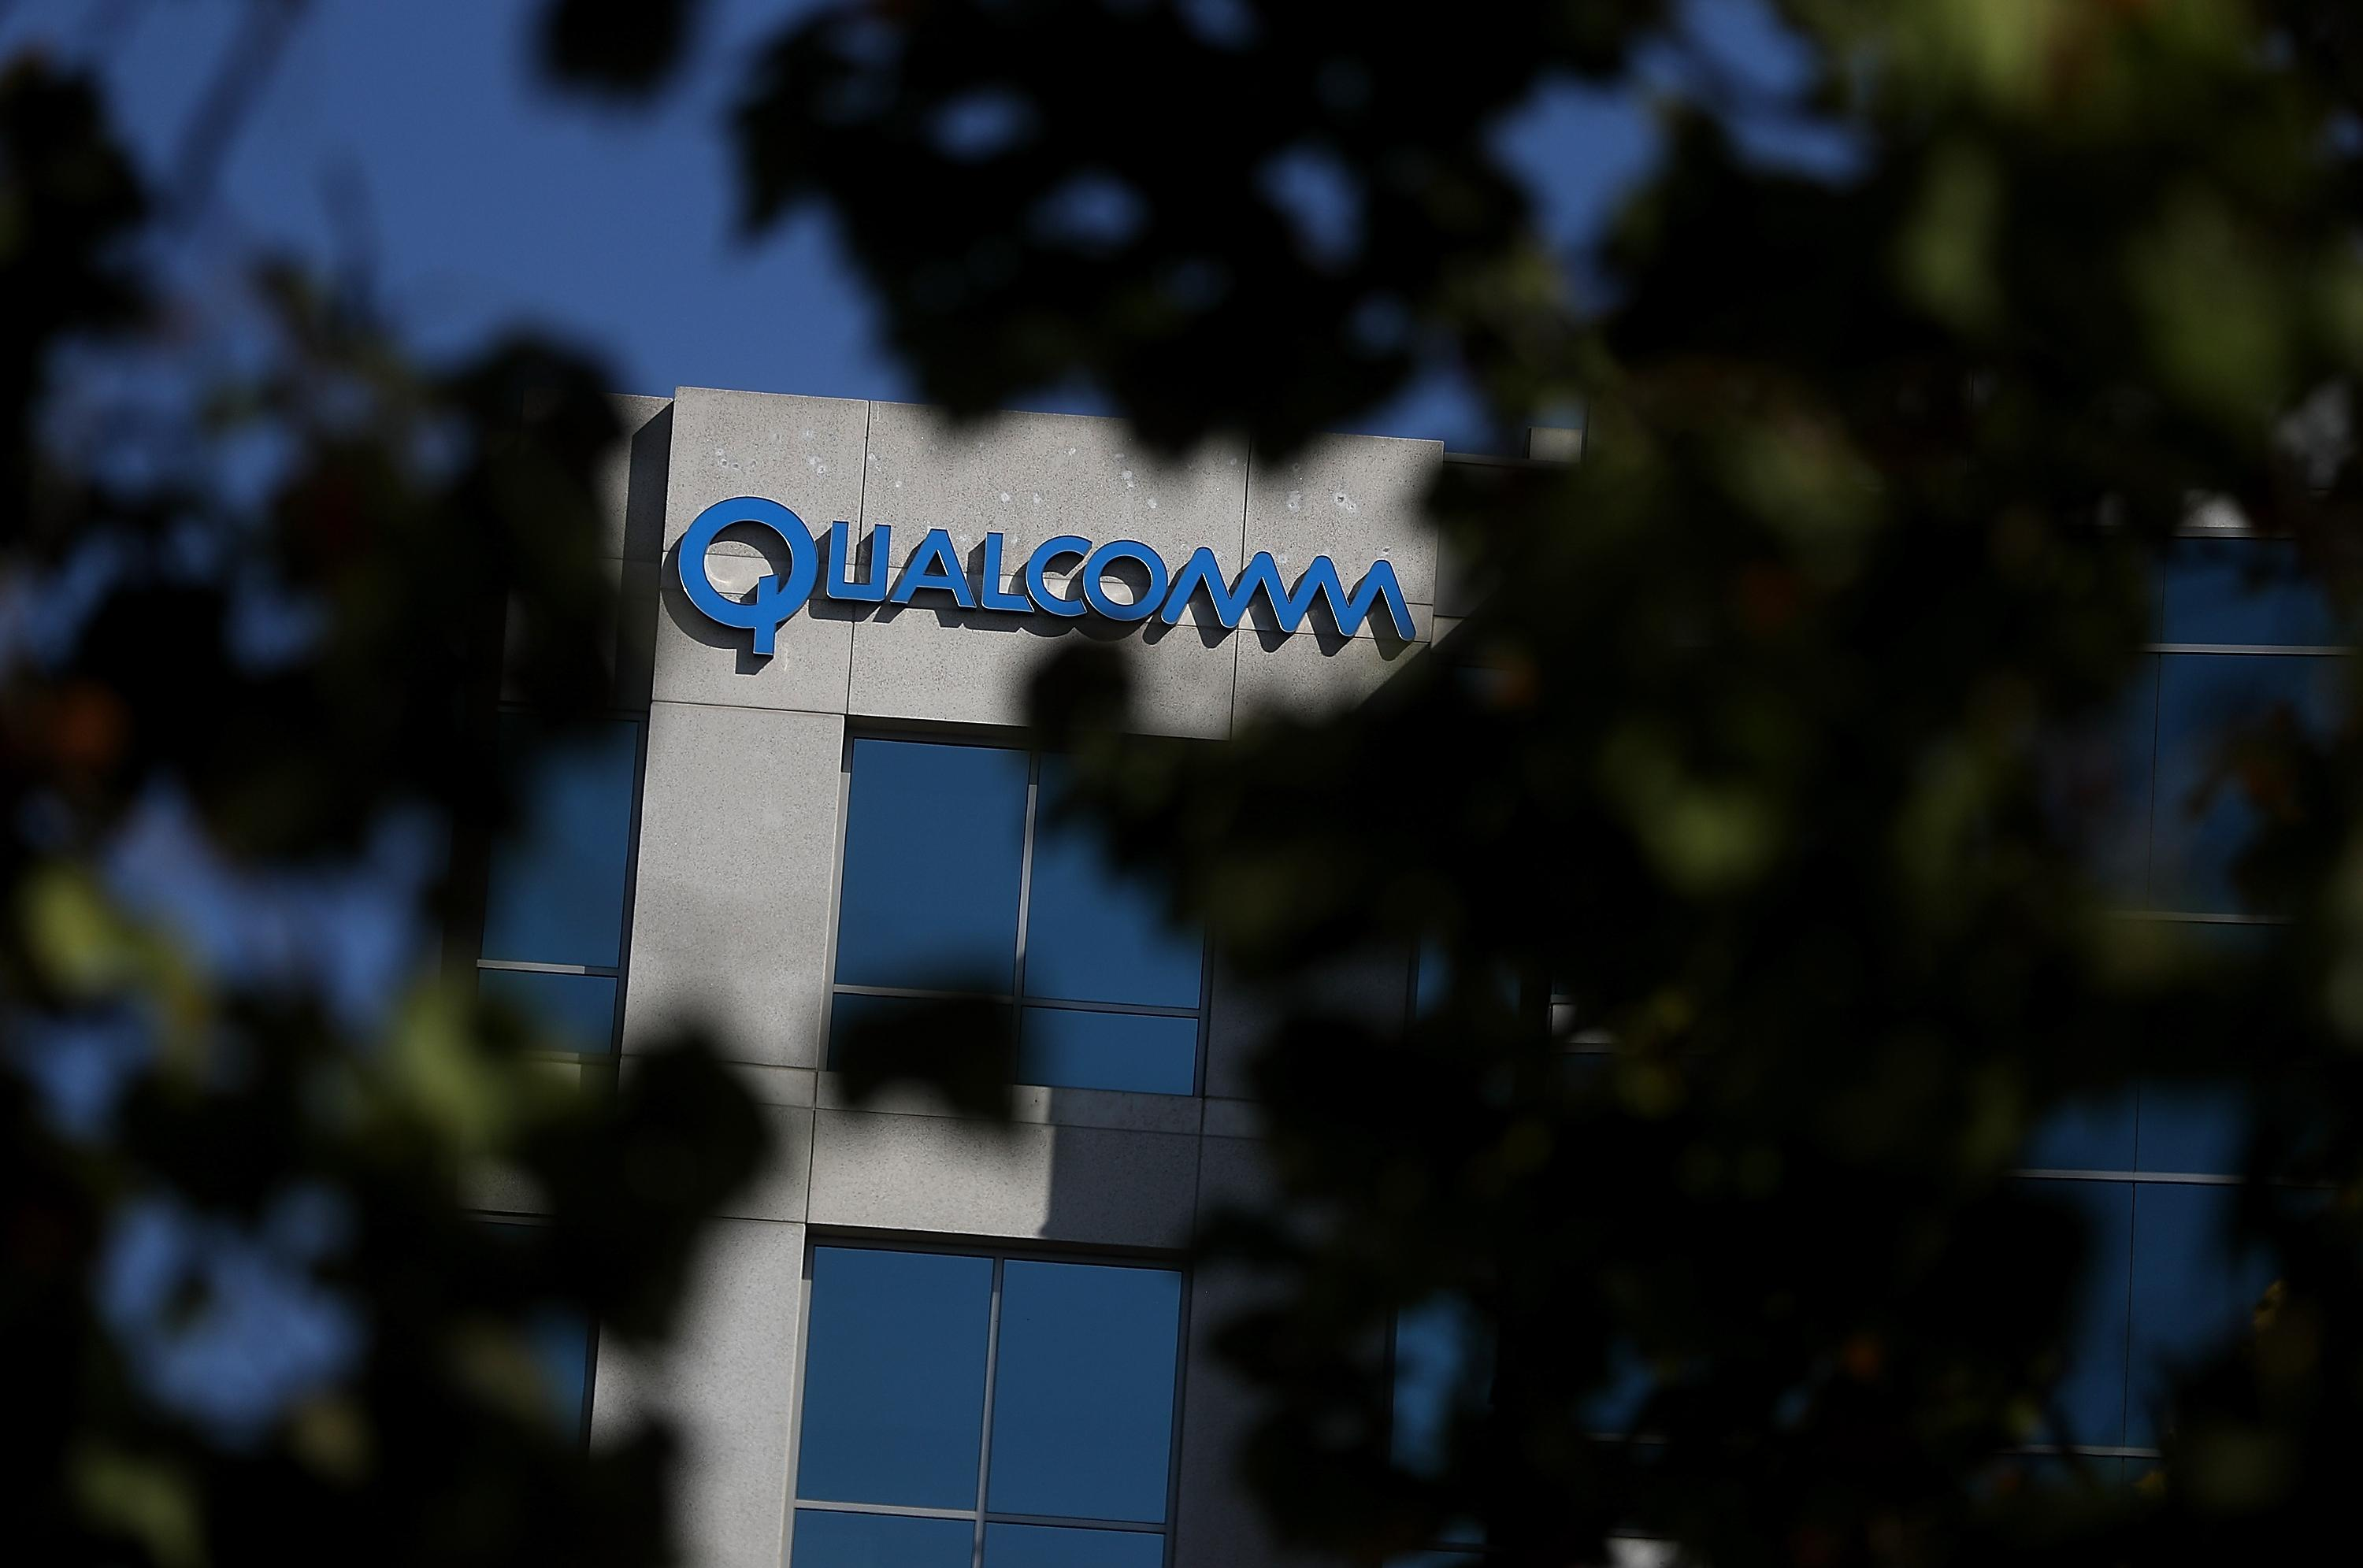 Qualcomm launches USD 100 mln AI investment fund